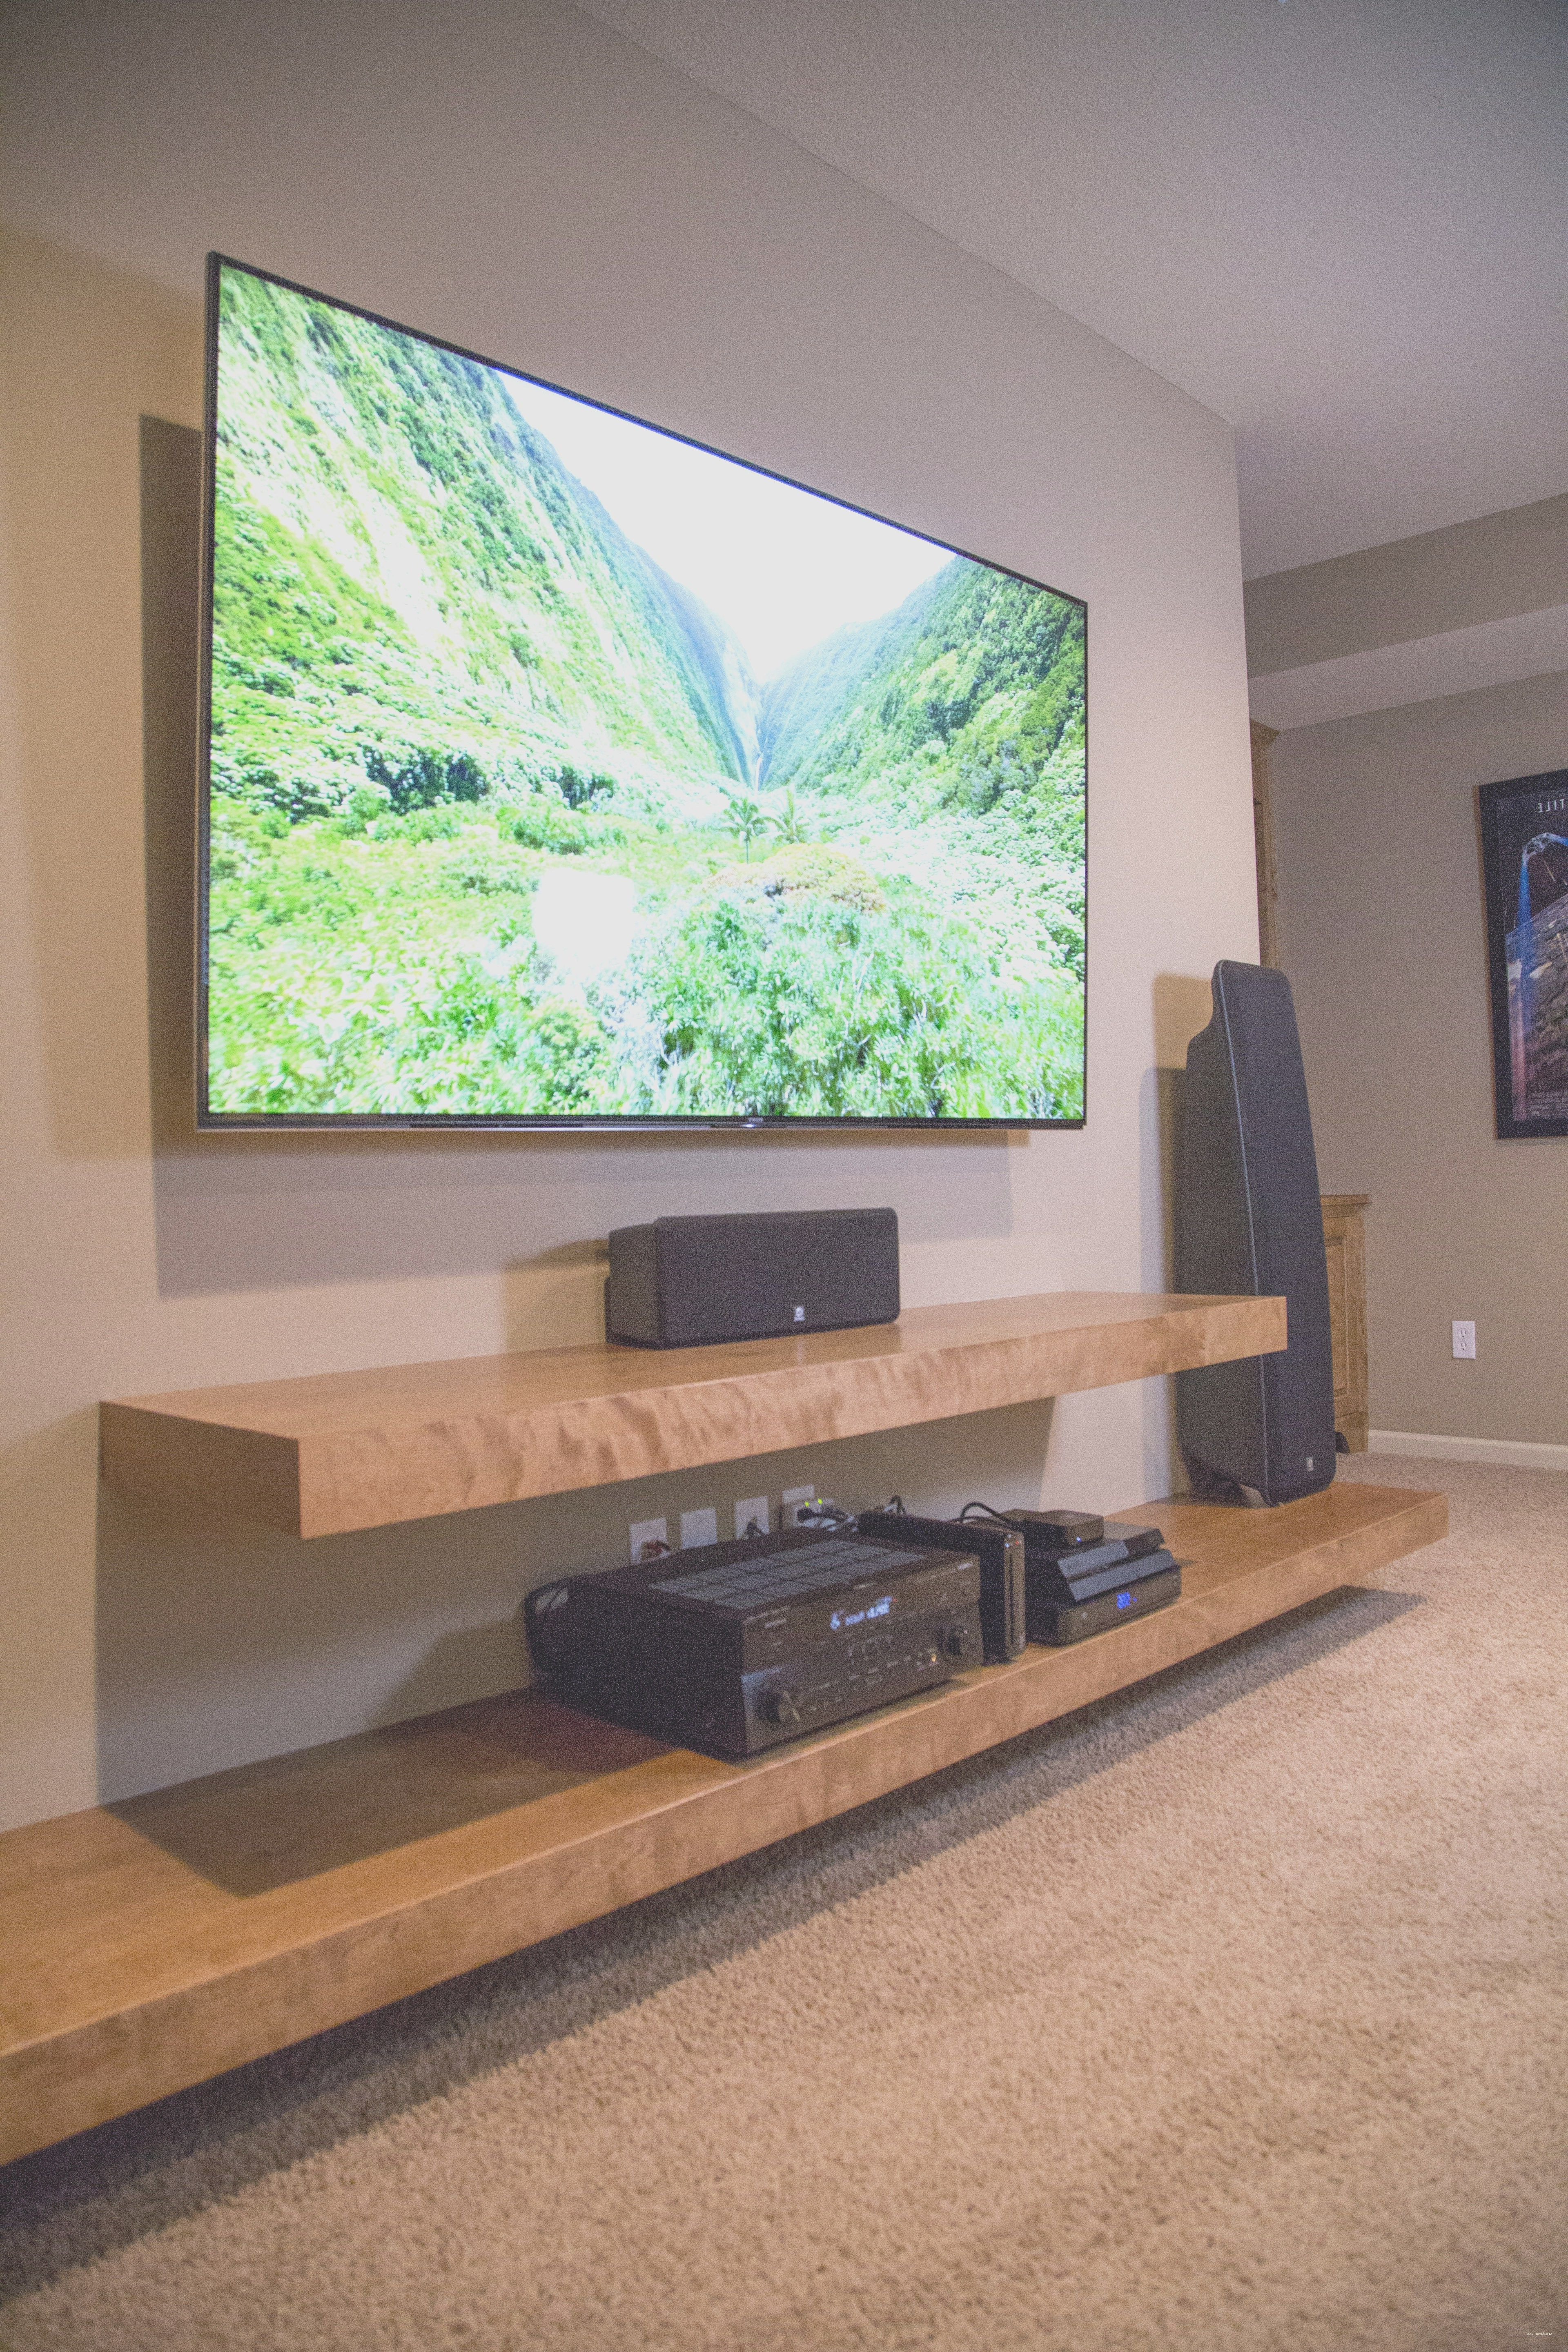 30 Beautiful Diy Tv Stand Ideas For Your Room Interior | Home Decor Regarding Kenzie 60 Inch Open Display Tv Stands (View 16 of 20)